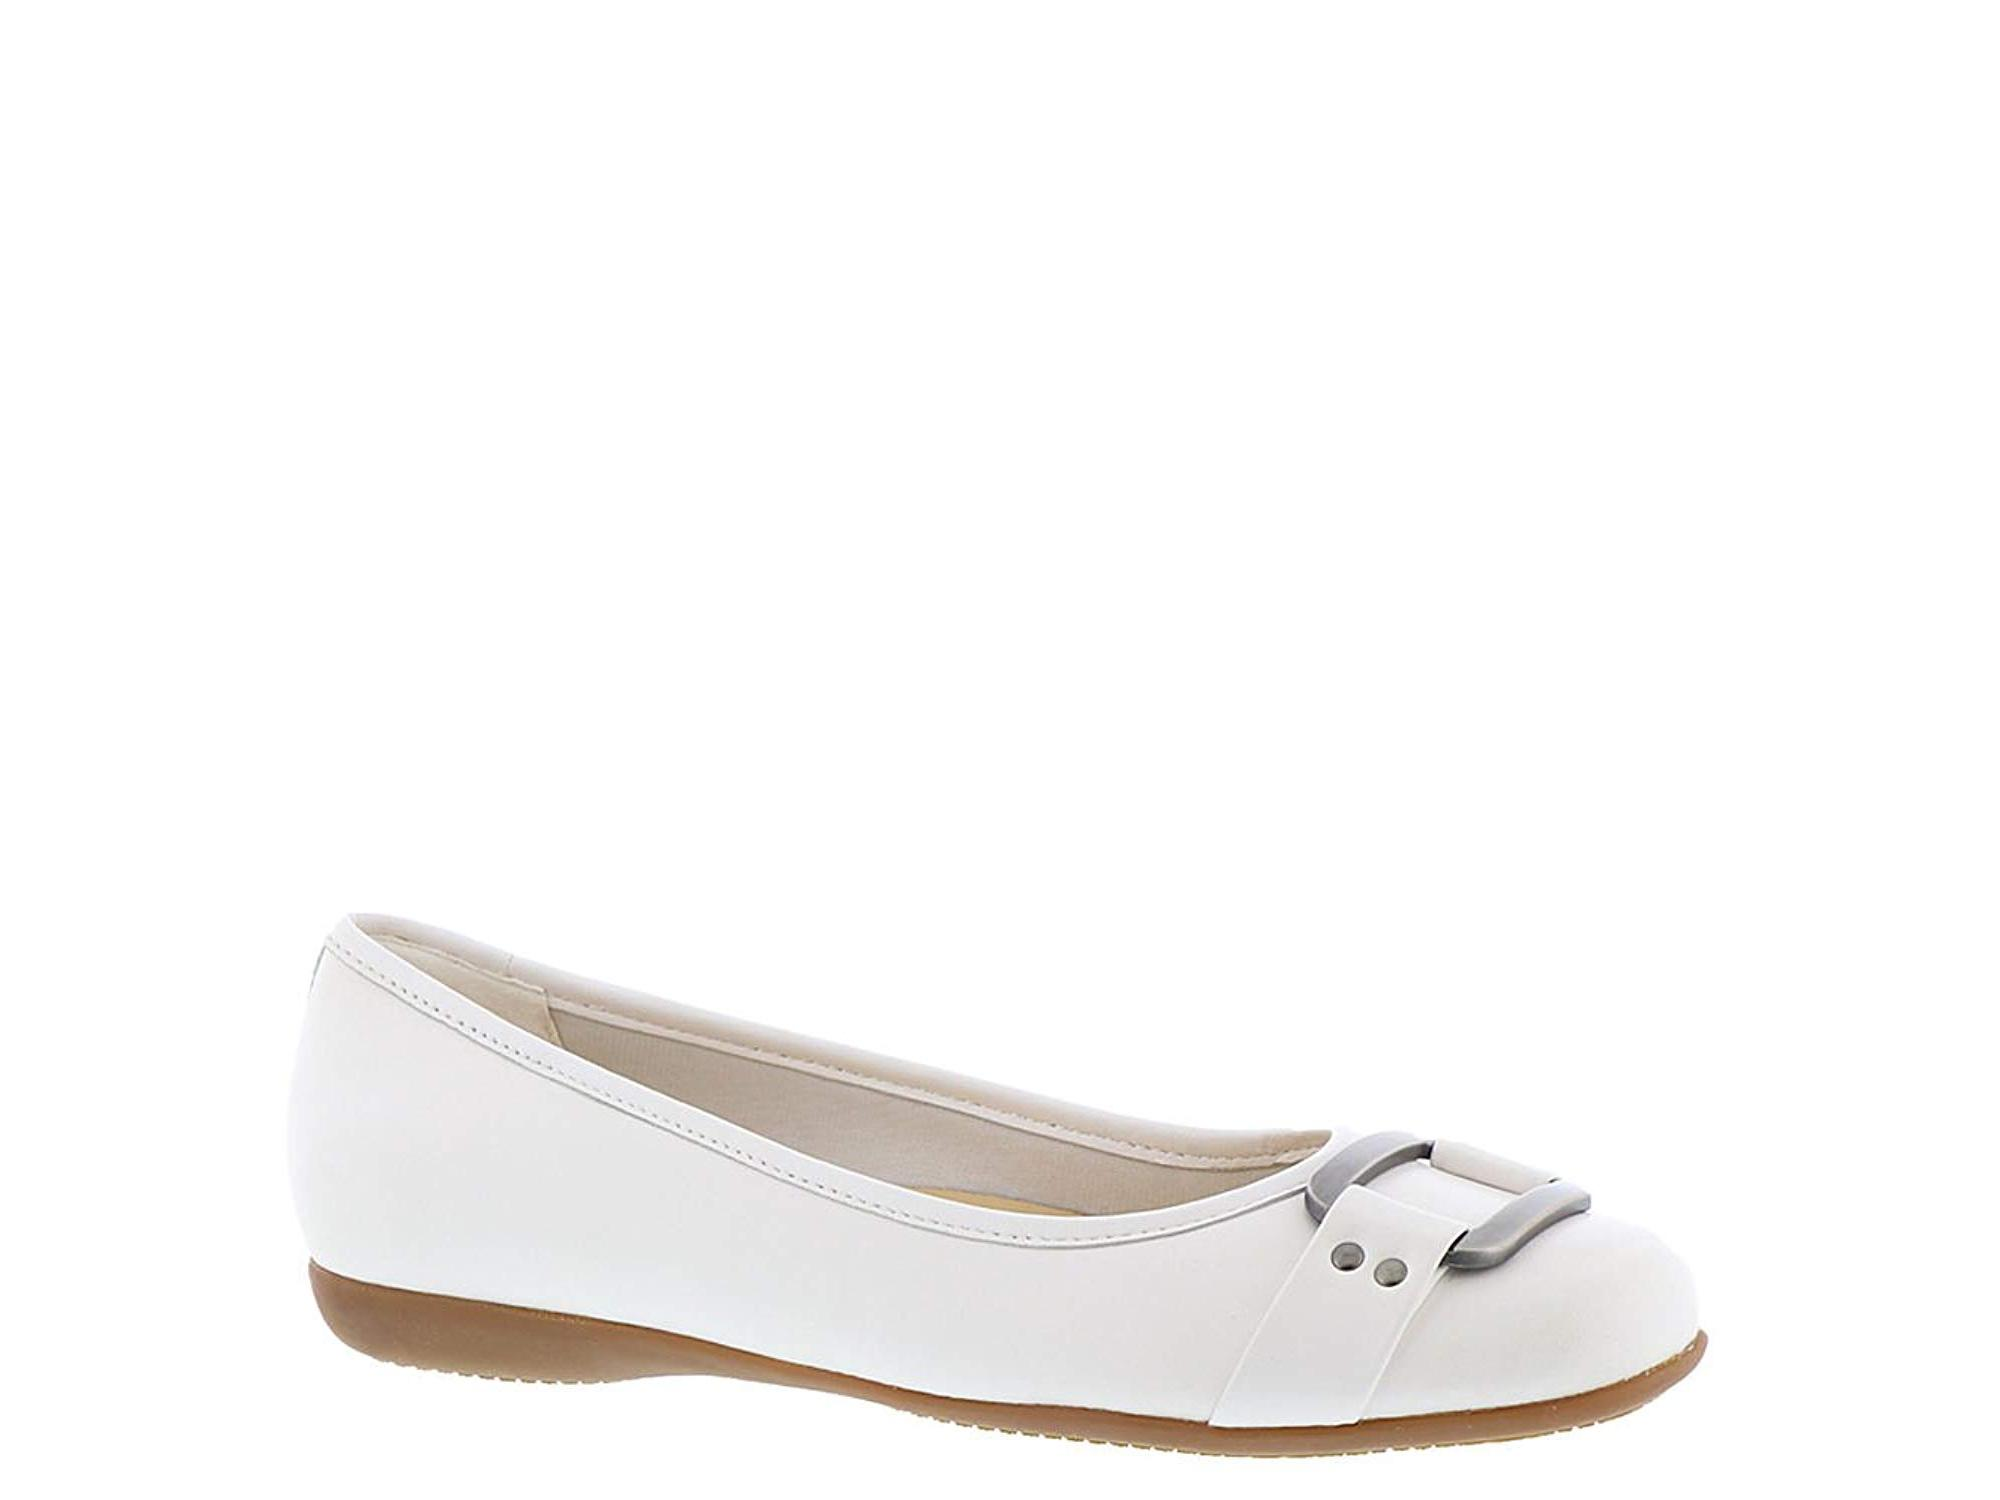 Trotters Sizzle Women's Slip On, White, Size 8.5 by Trotters